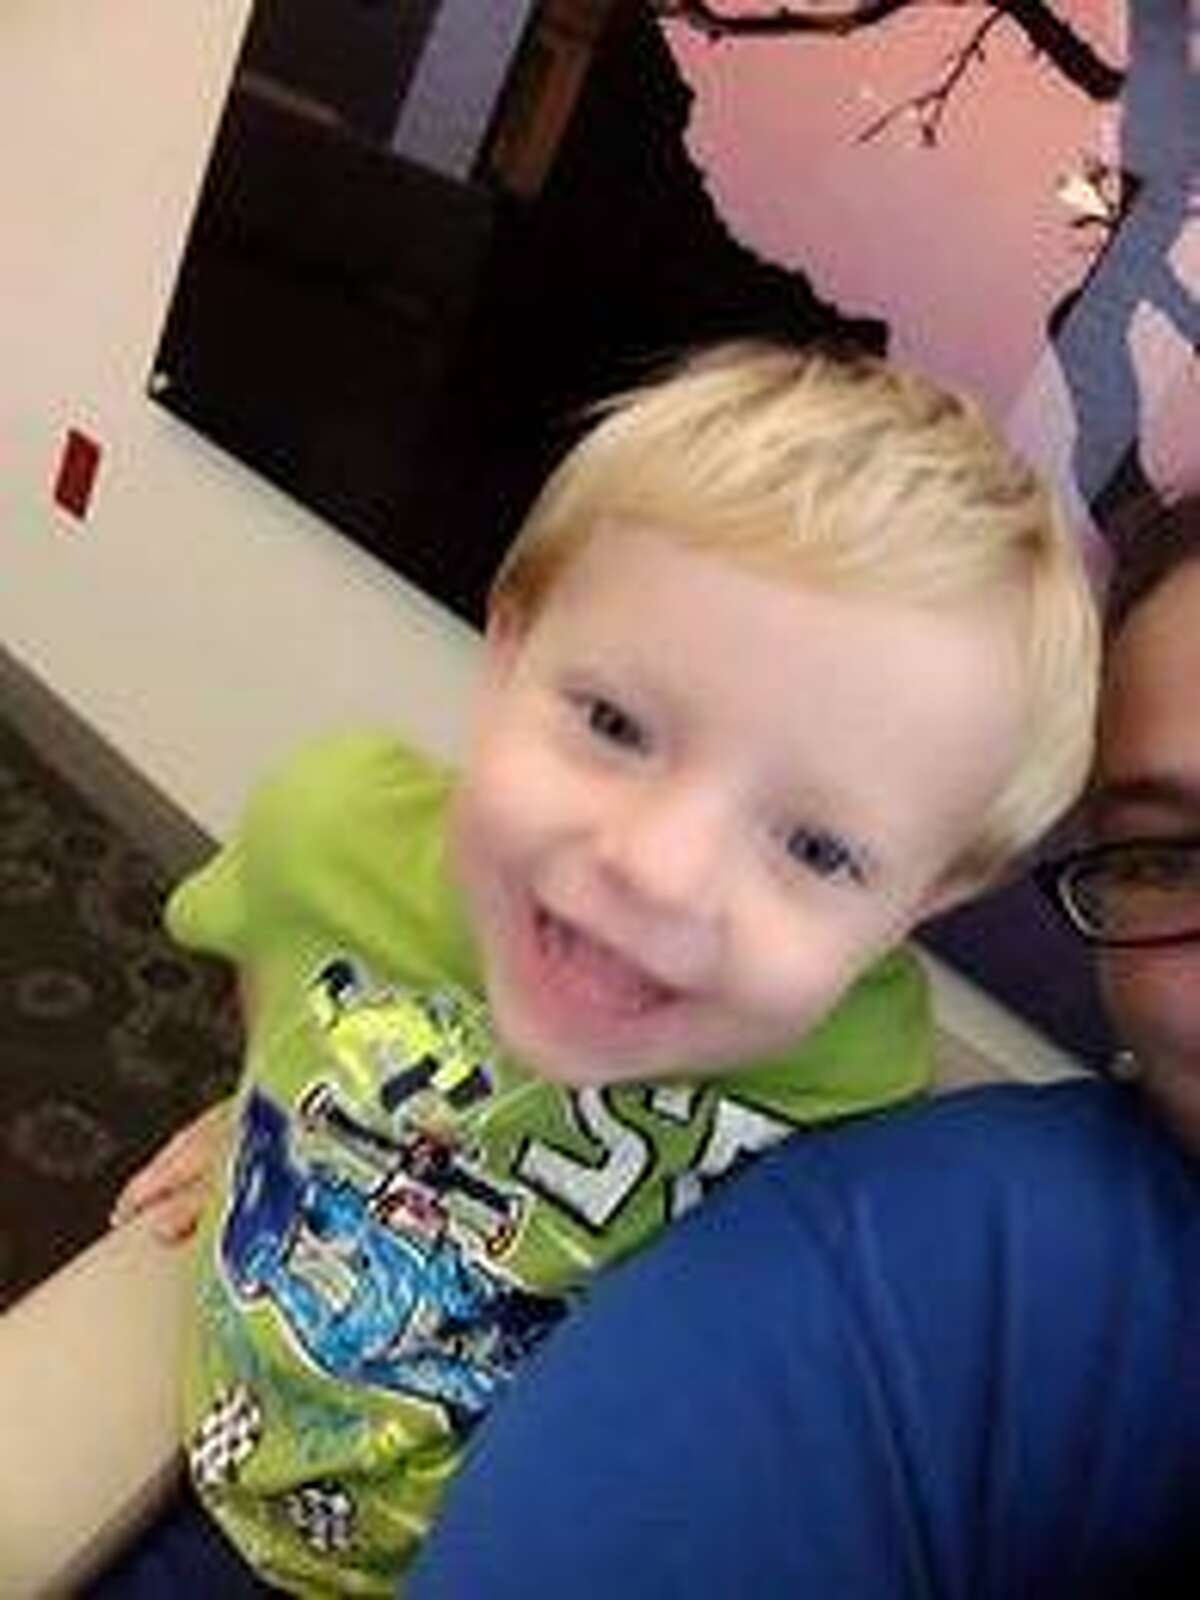 Daniel Theriot, 3, who was found dead Monday near Las Vegas.